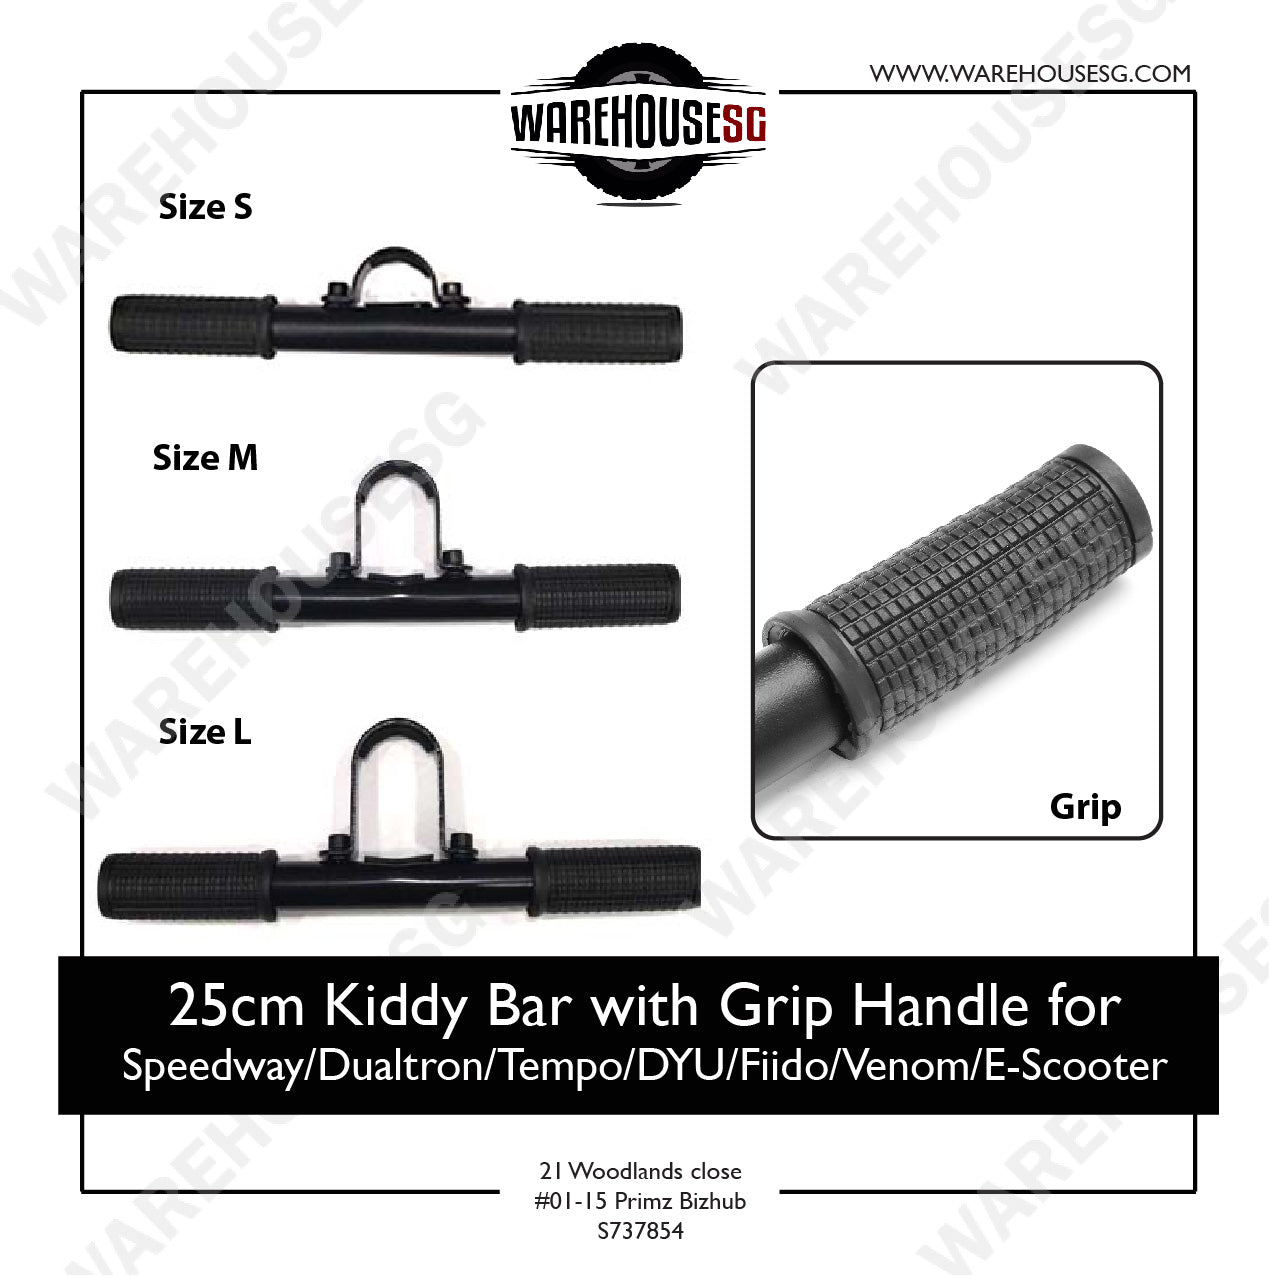 25cm Kiddy Bar with Grip Handle for  Speedway/Dualtron/Tempo/DYU/Fiido/Venom/E-Scooter